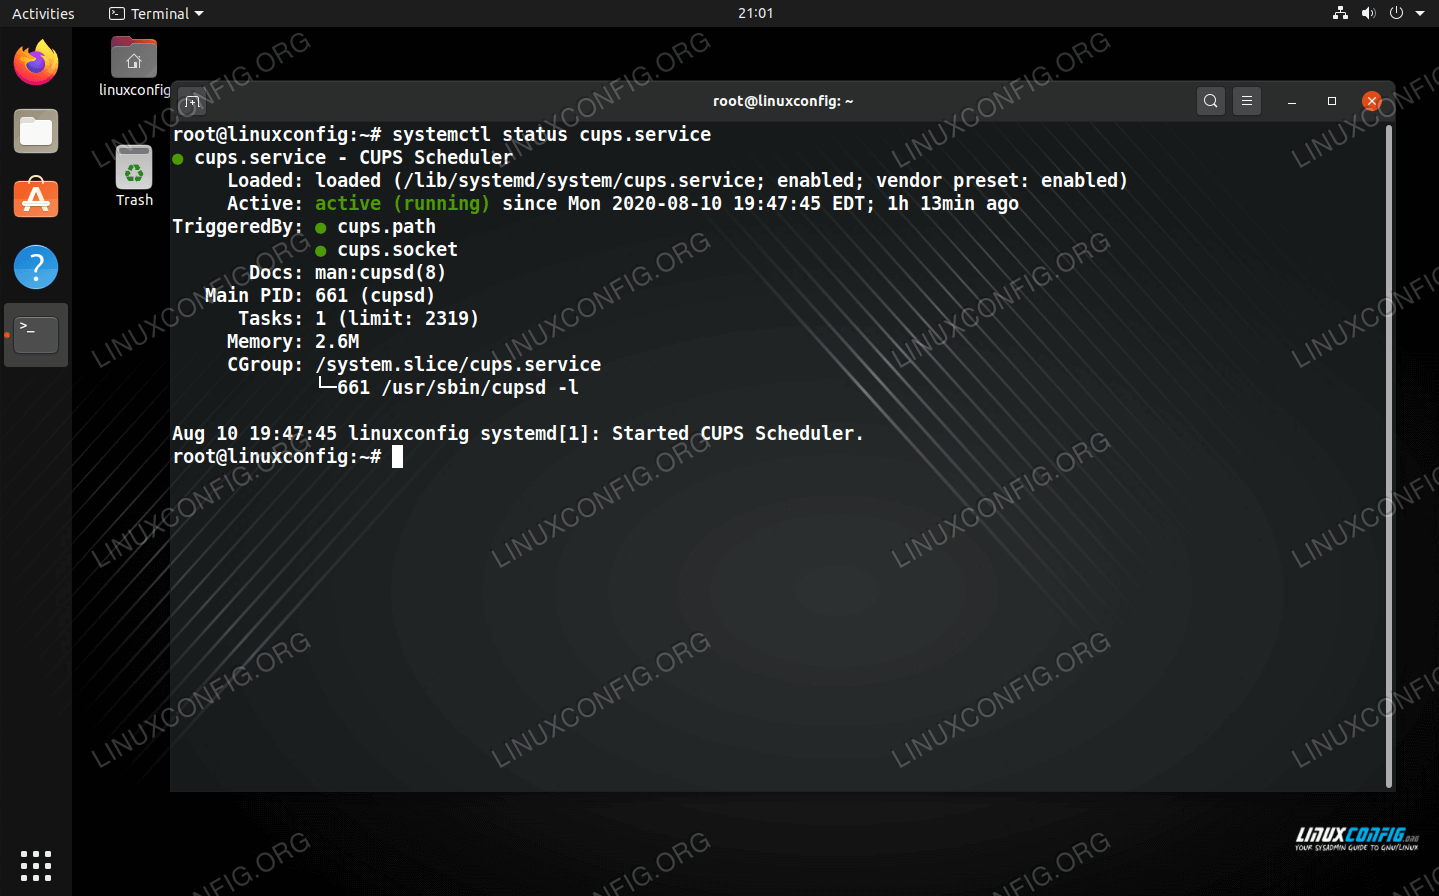 Checking the status of a specific service within systemd